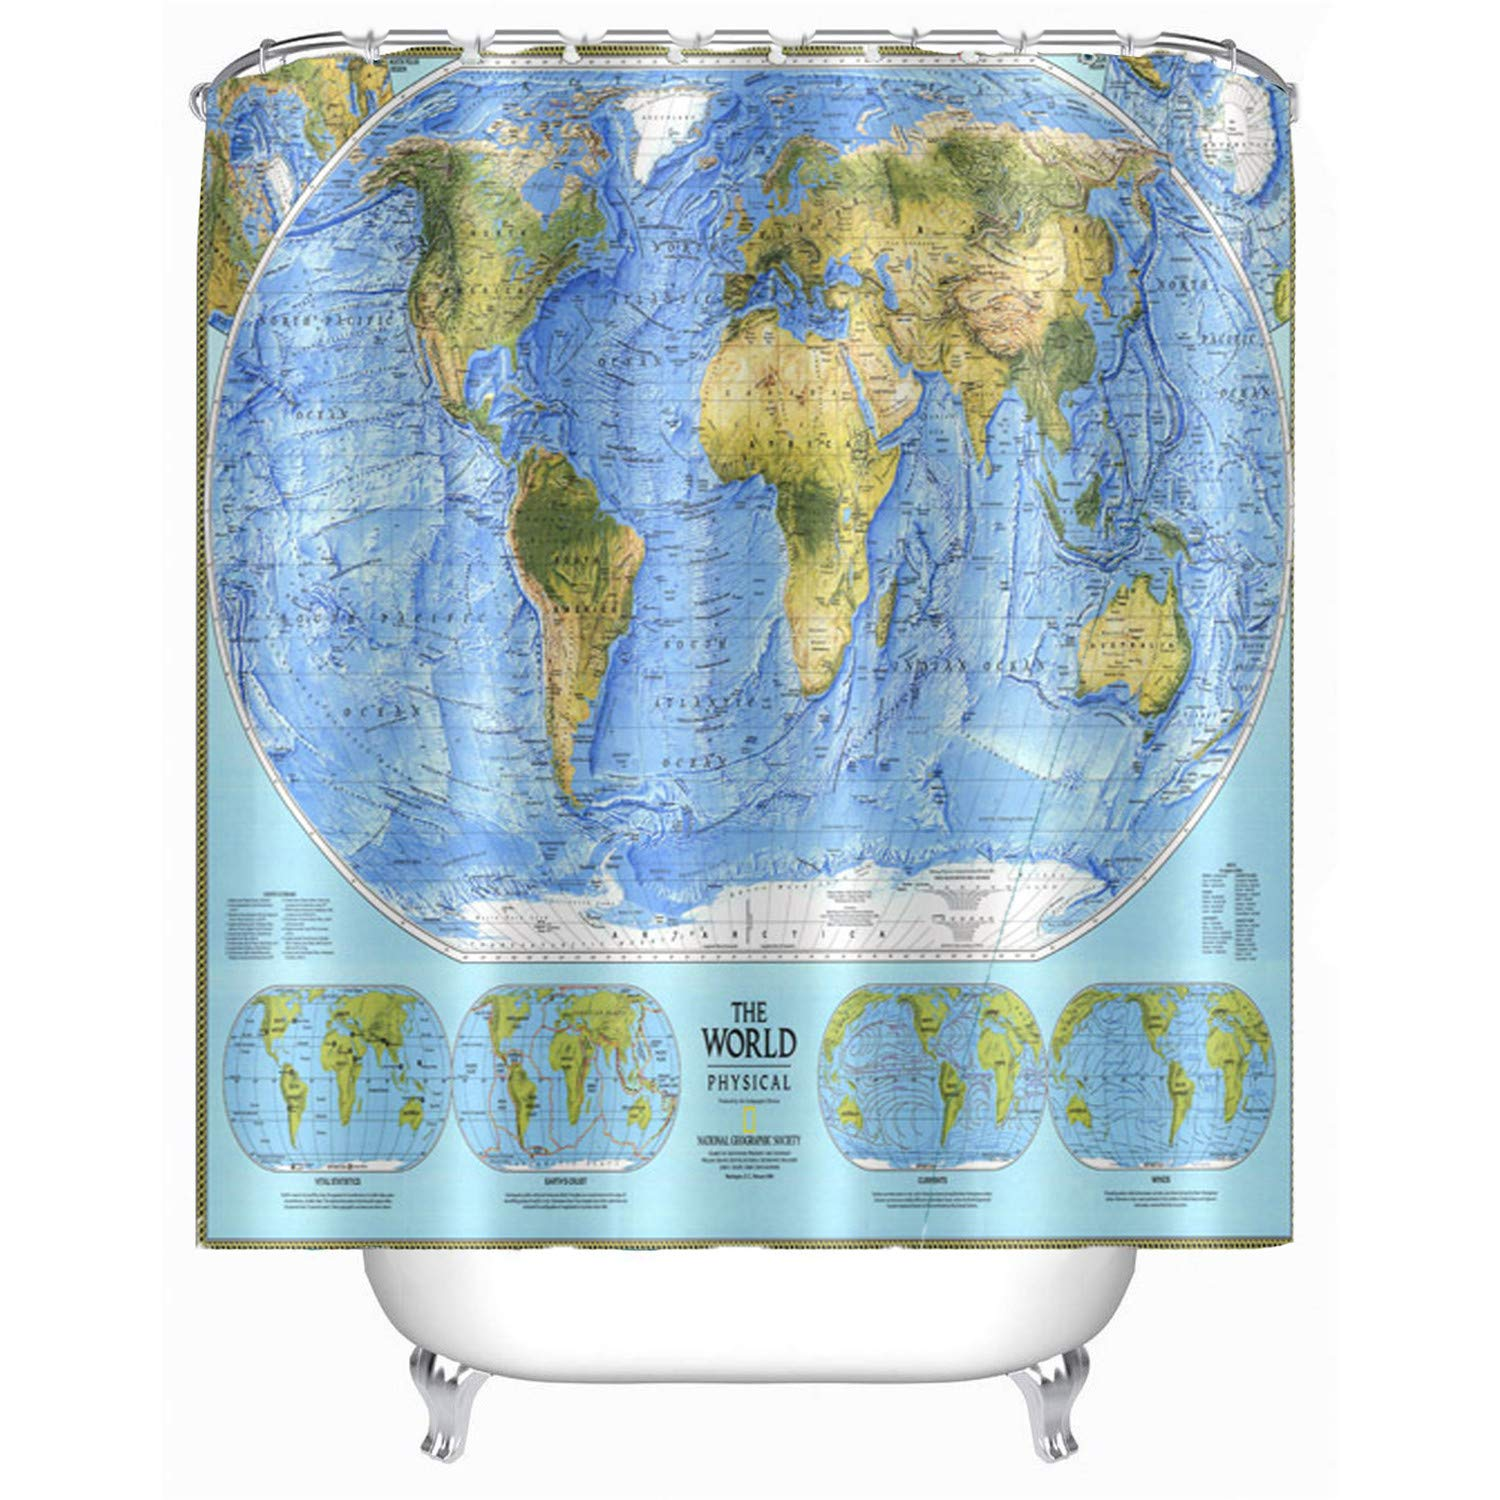 hipaopao World Map Shower Curtains Countries Capital Cities Blue Earth  Decor Fabric Bathroom Accessories Set 72X72 Inch Free Hooks Included